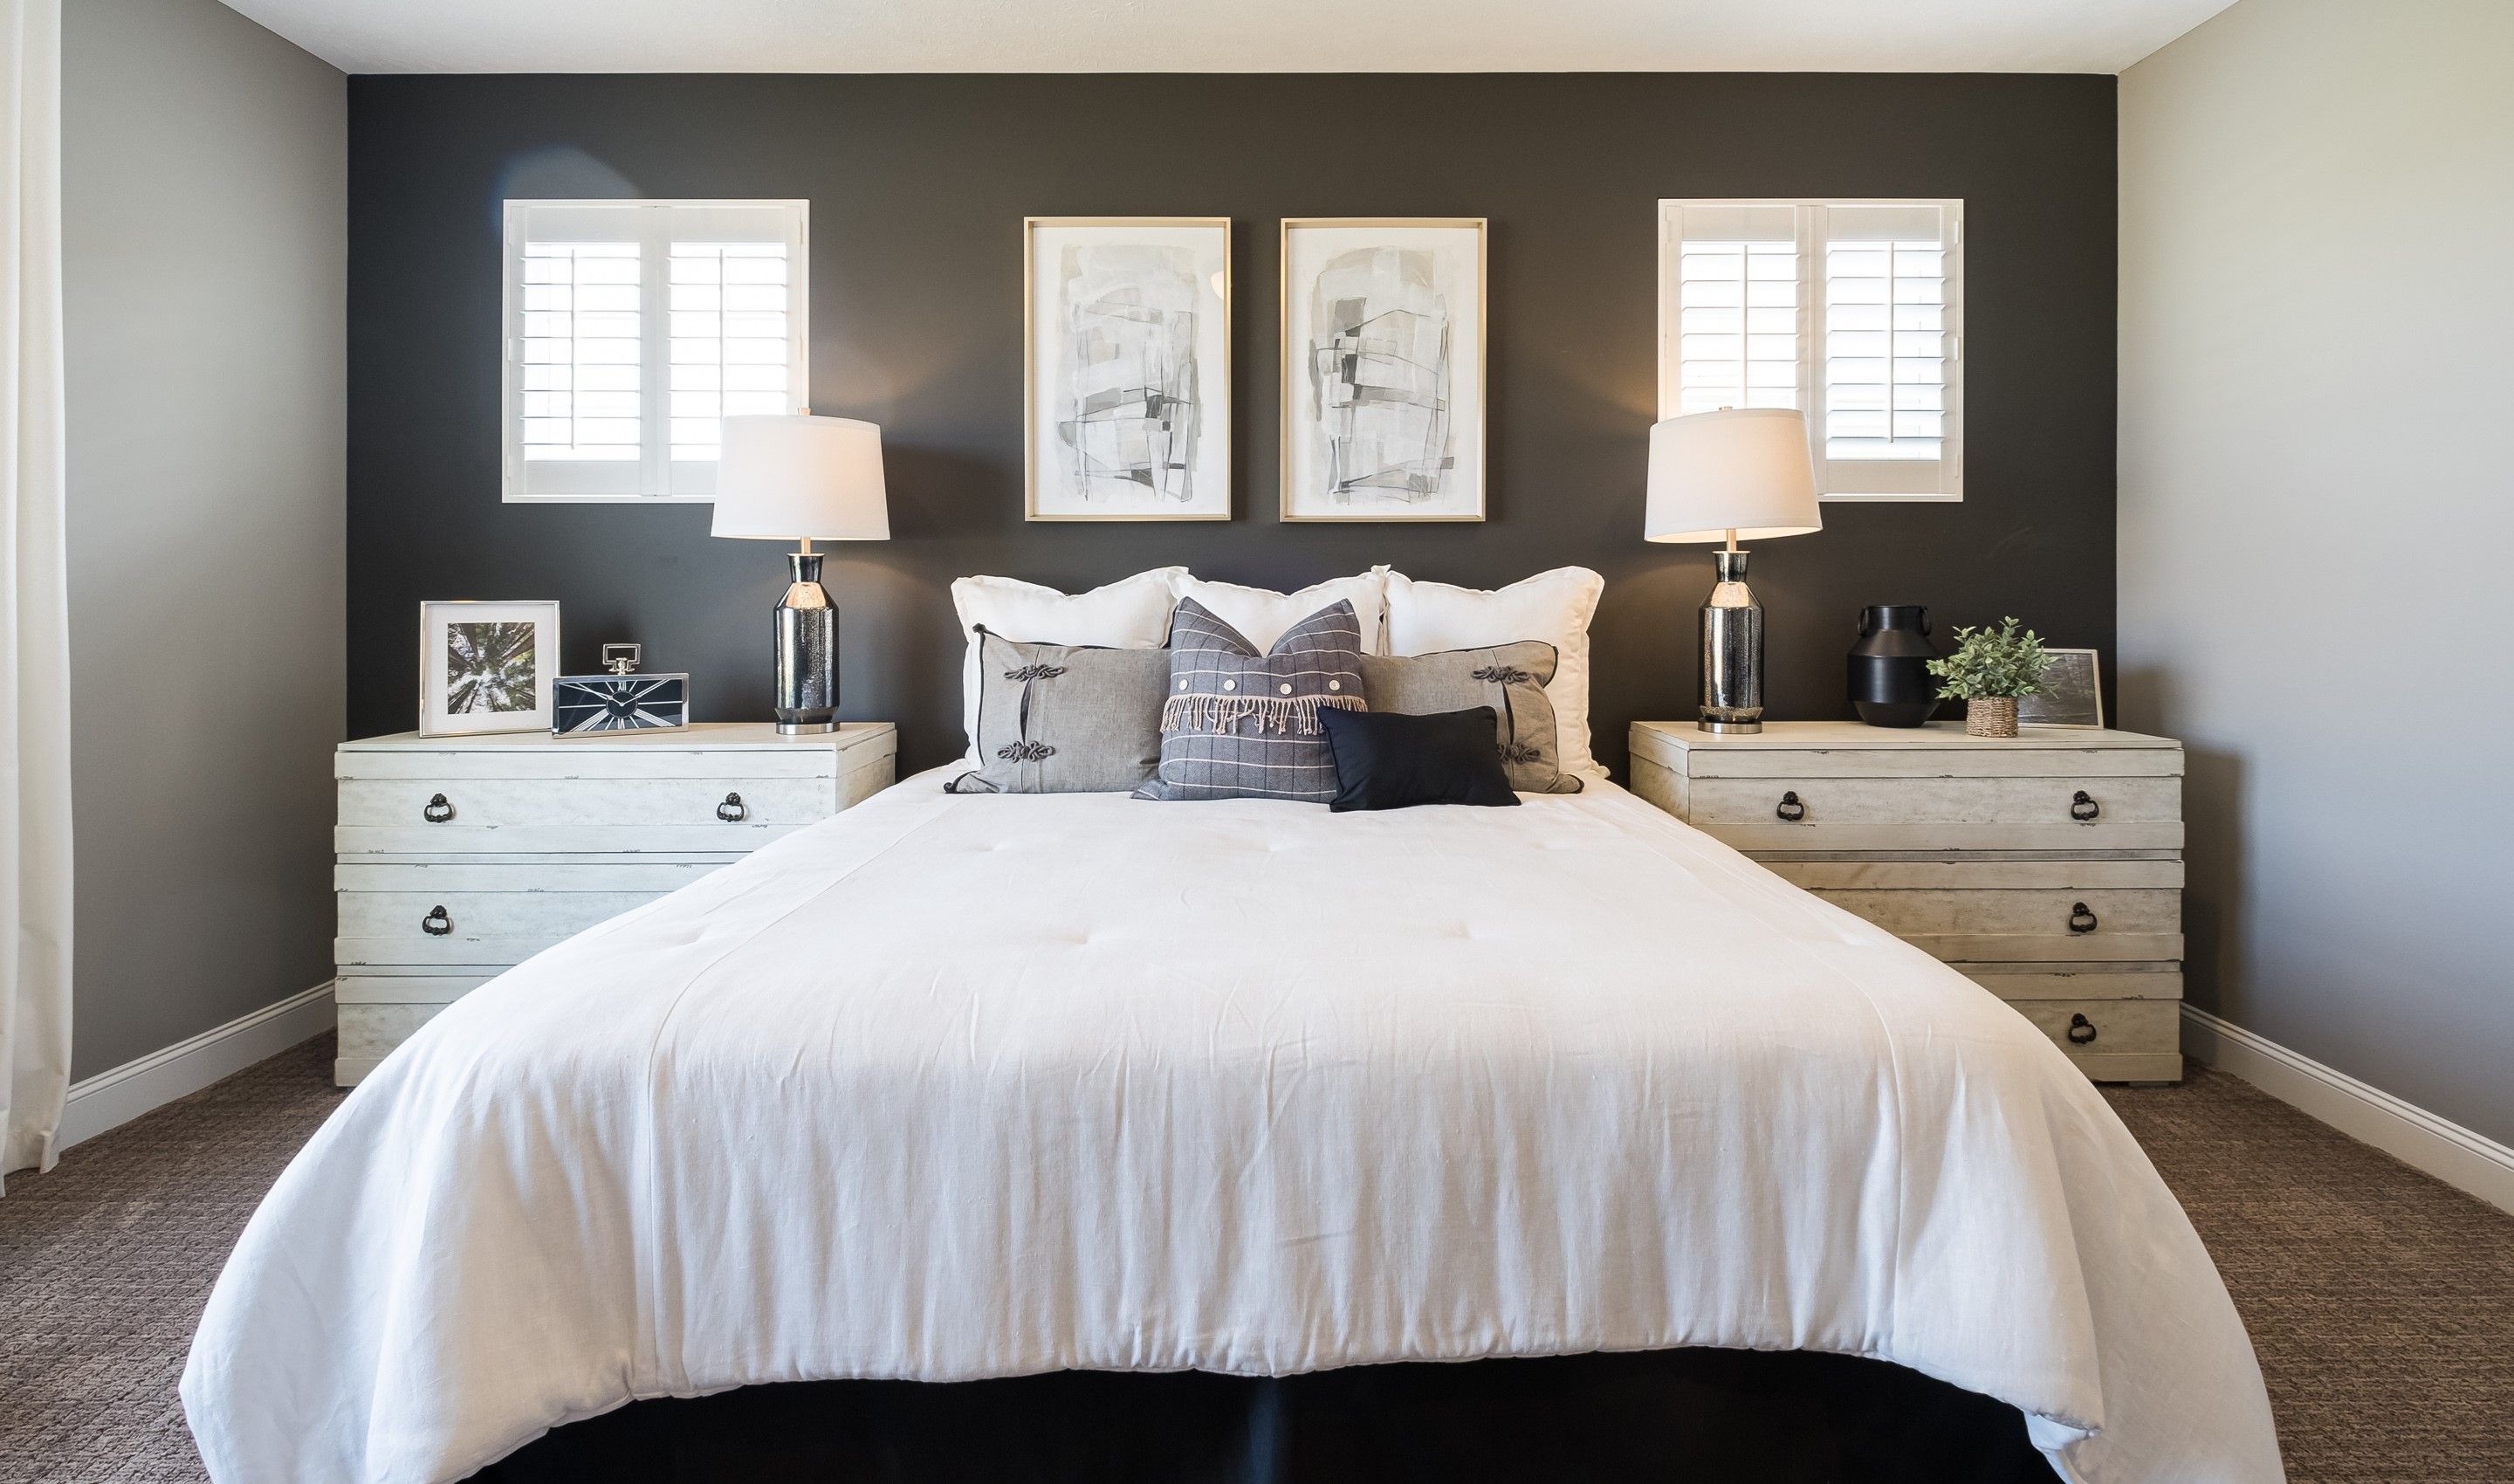 Bedroom featured in the Killarney By K. Hovnanian's® Four Seasons in Cleveland, OH